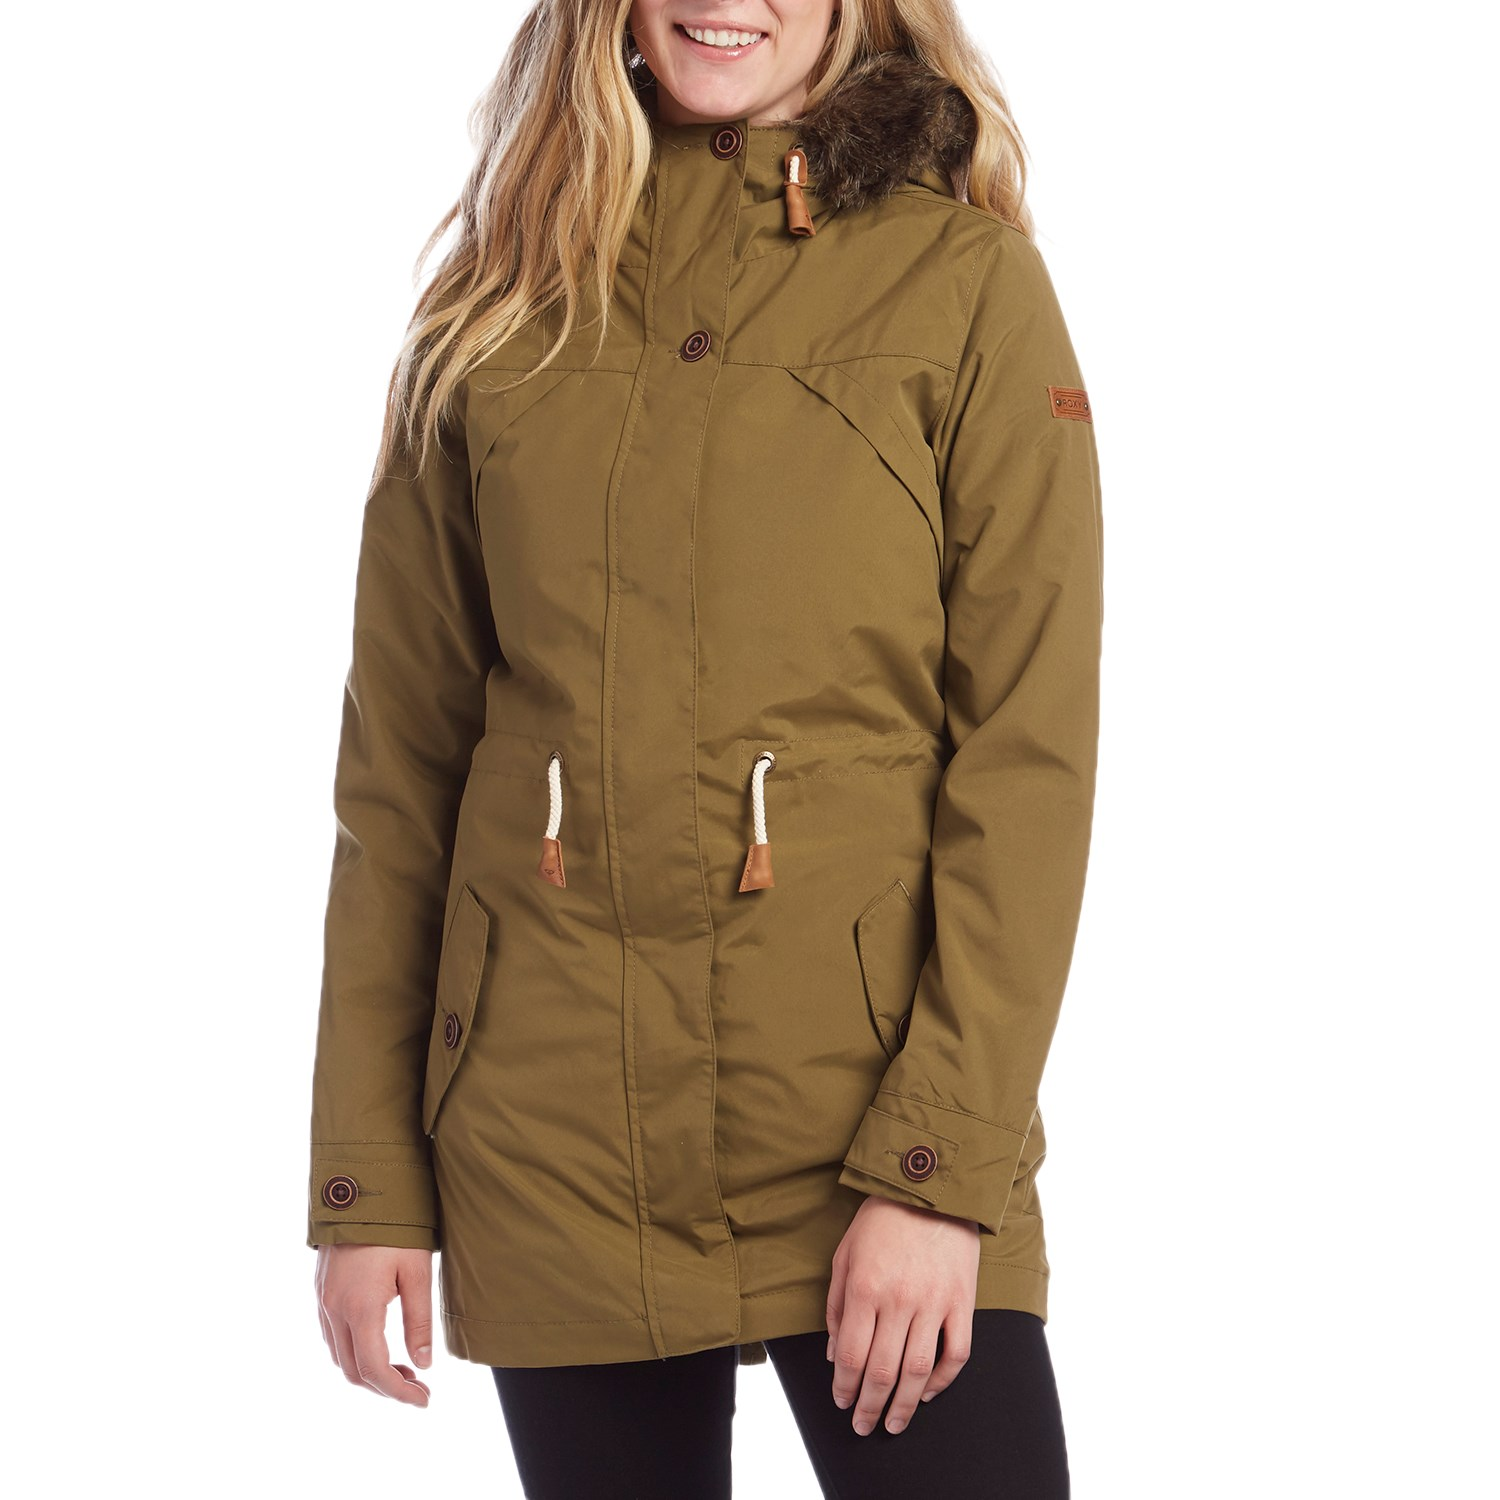 Roxy Amy 3-In-1 Jacket - Women's | evo